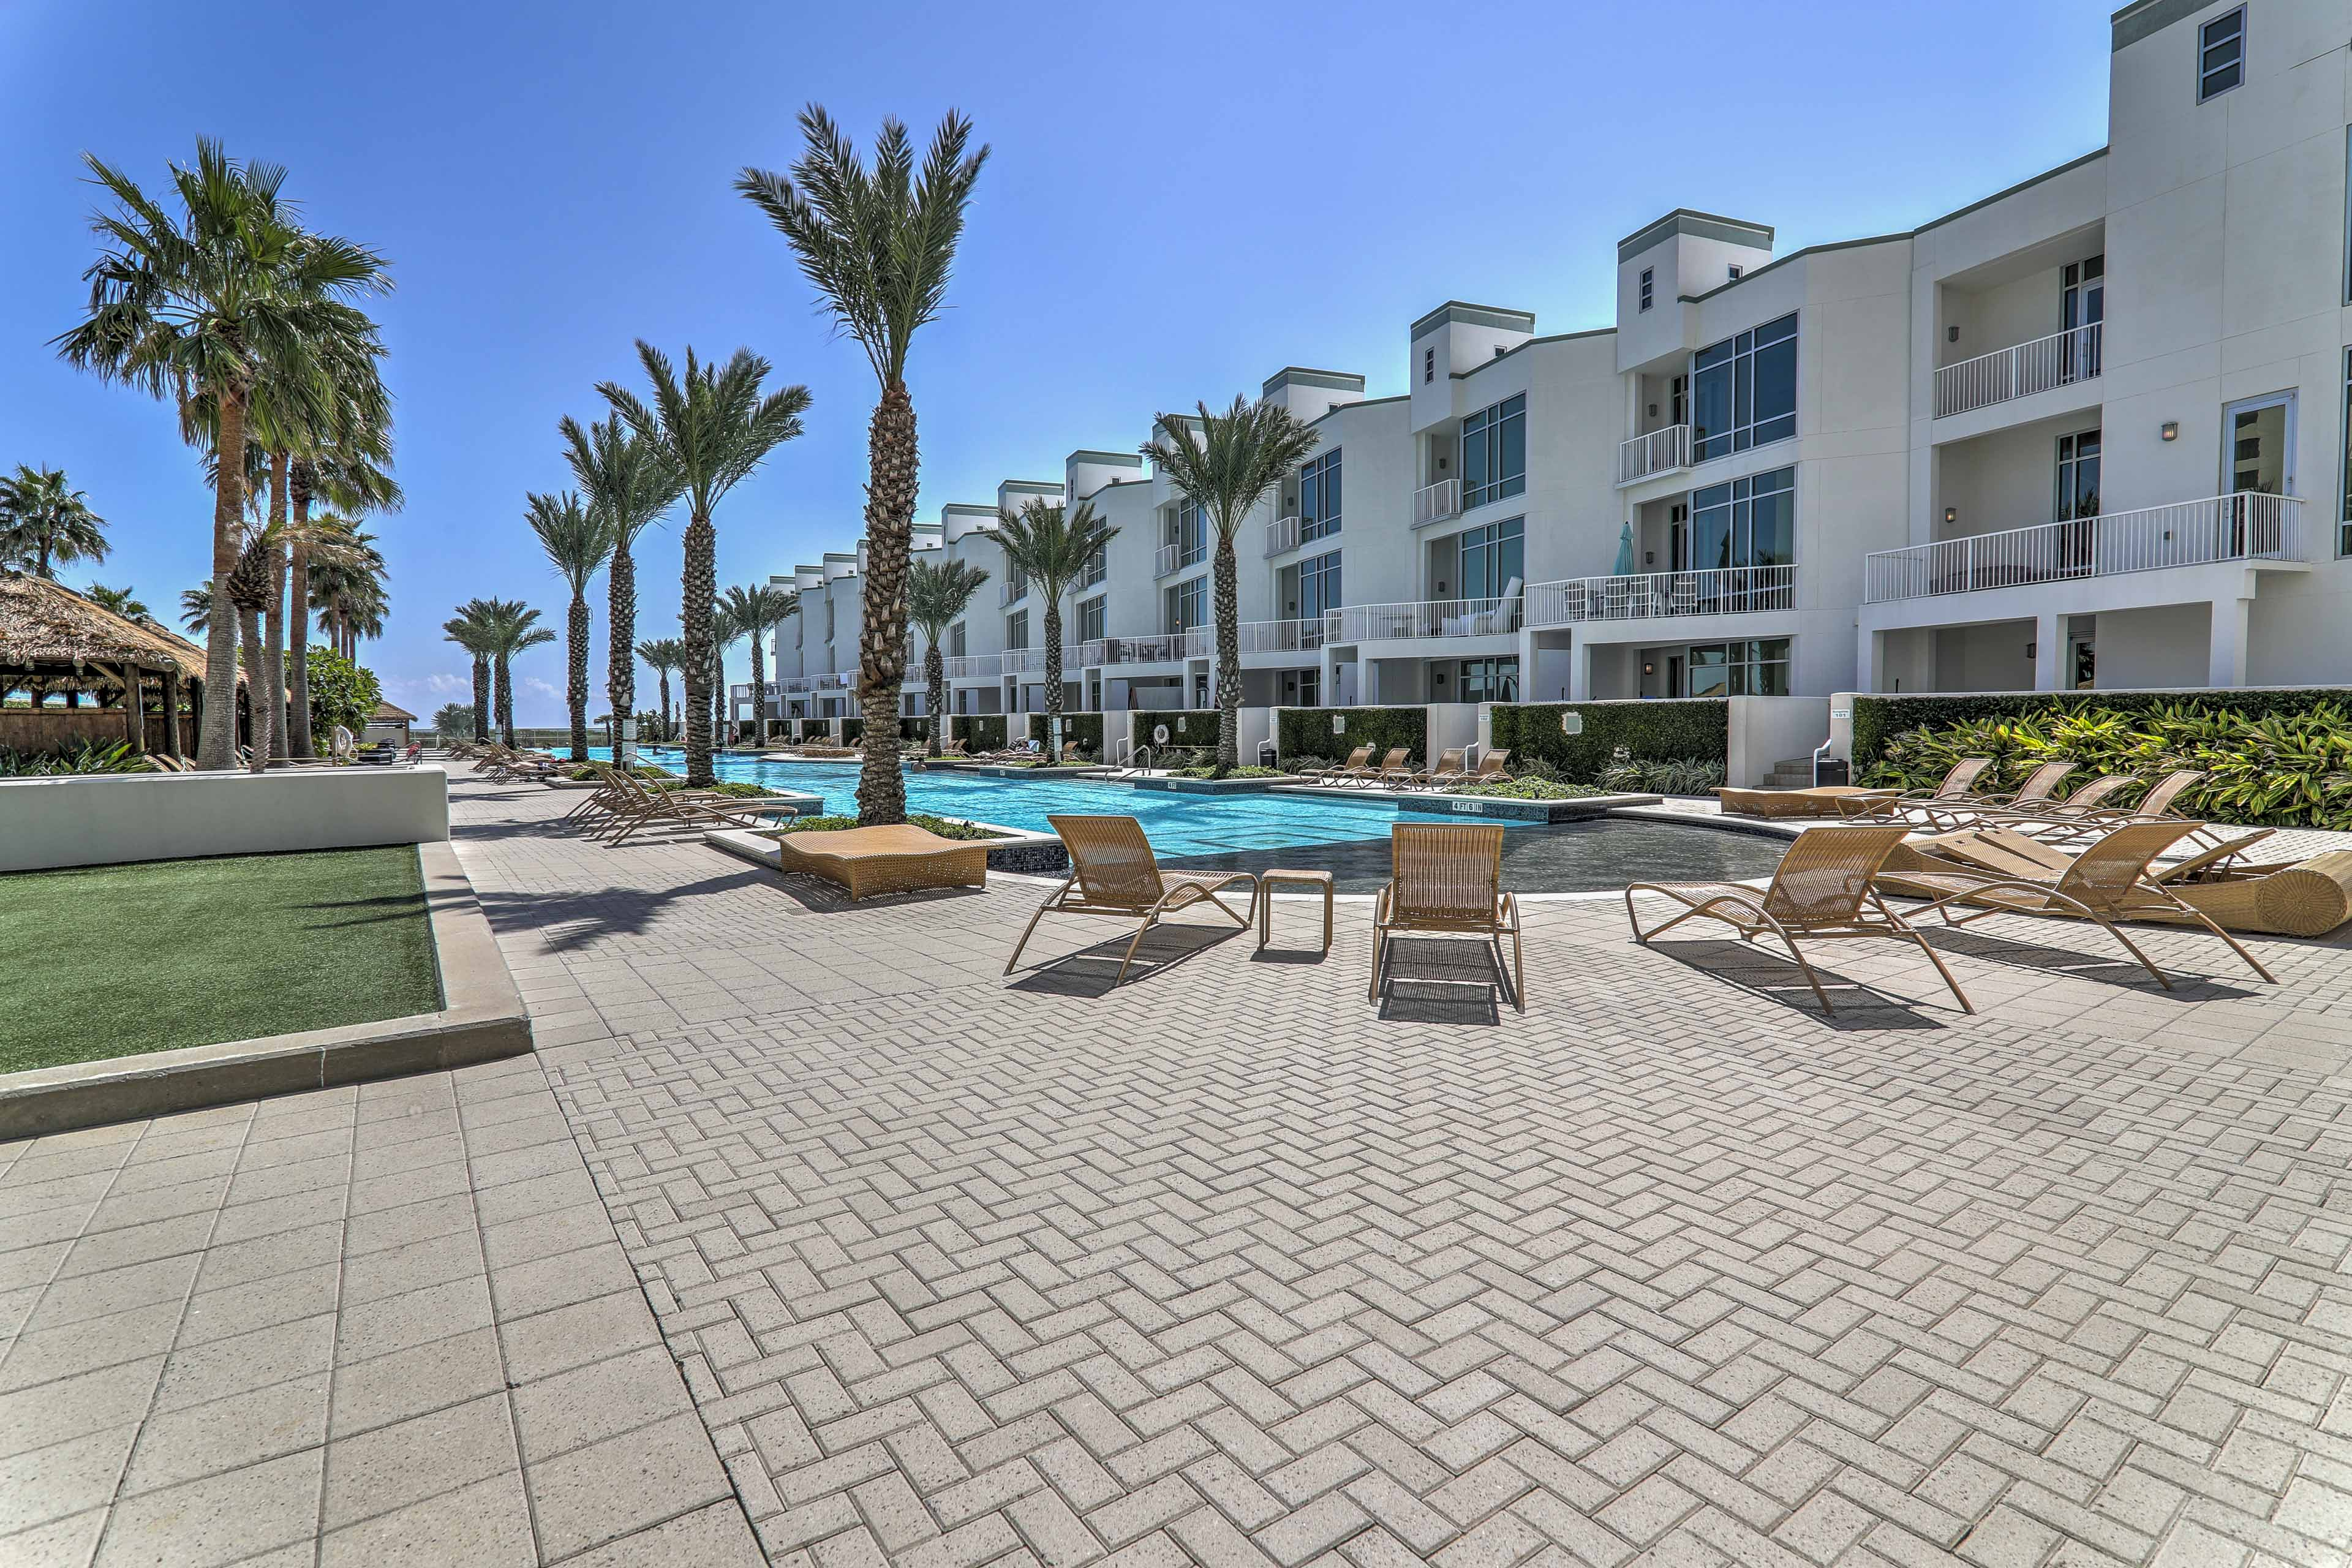 Snap a picture of your poolside moment by the cabanas with the breeze blowing.